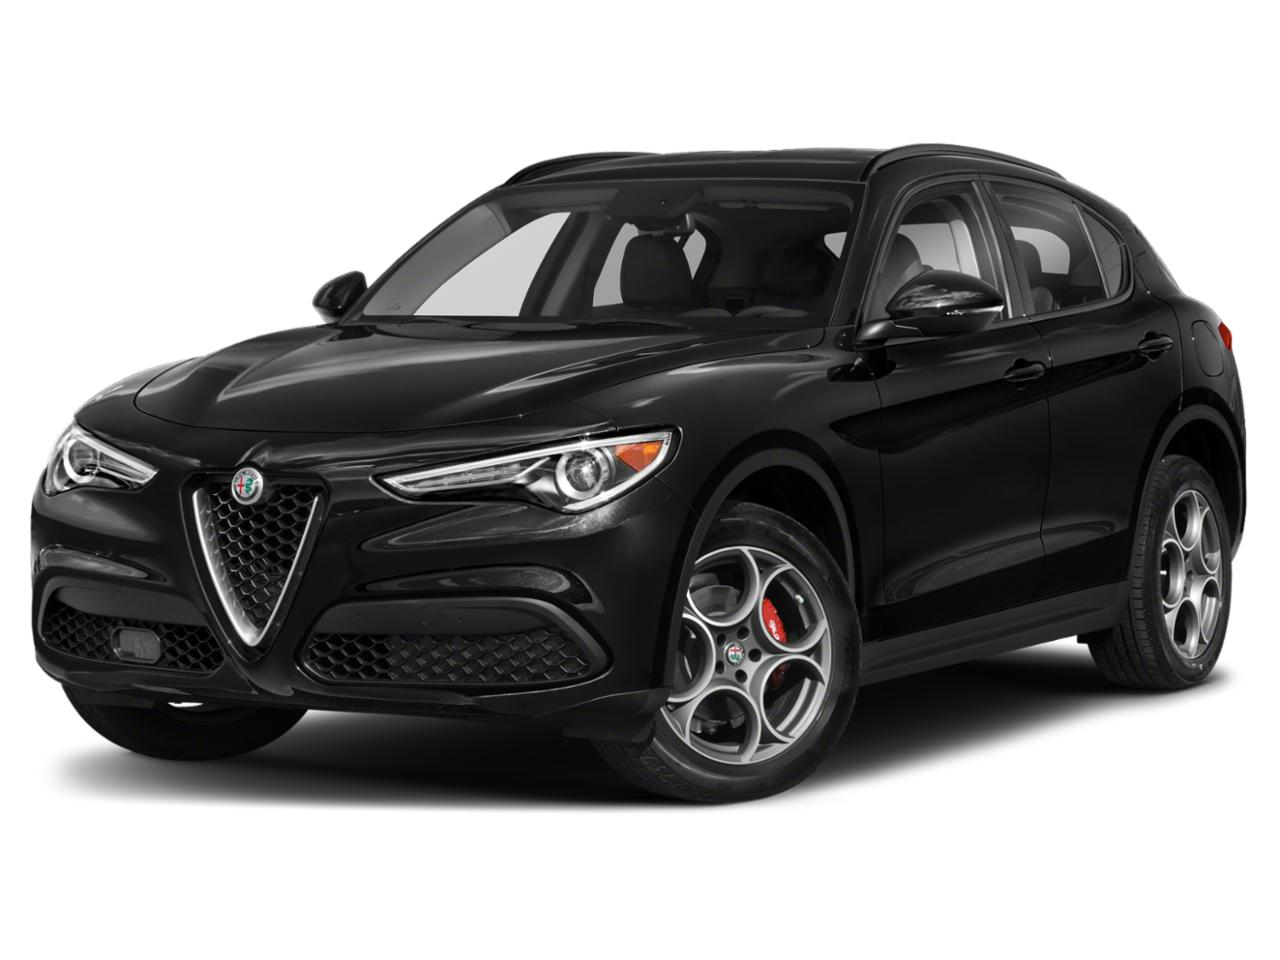 2020 Alfa Romeo Stelvio Vehicle Photo in Colorado Springs, CO 80905